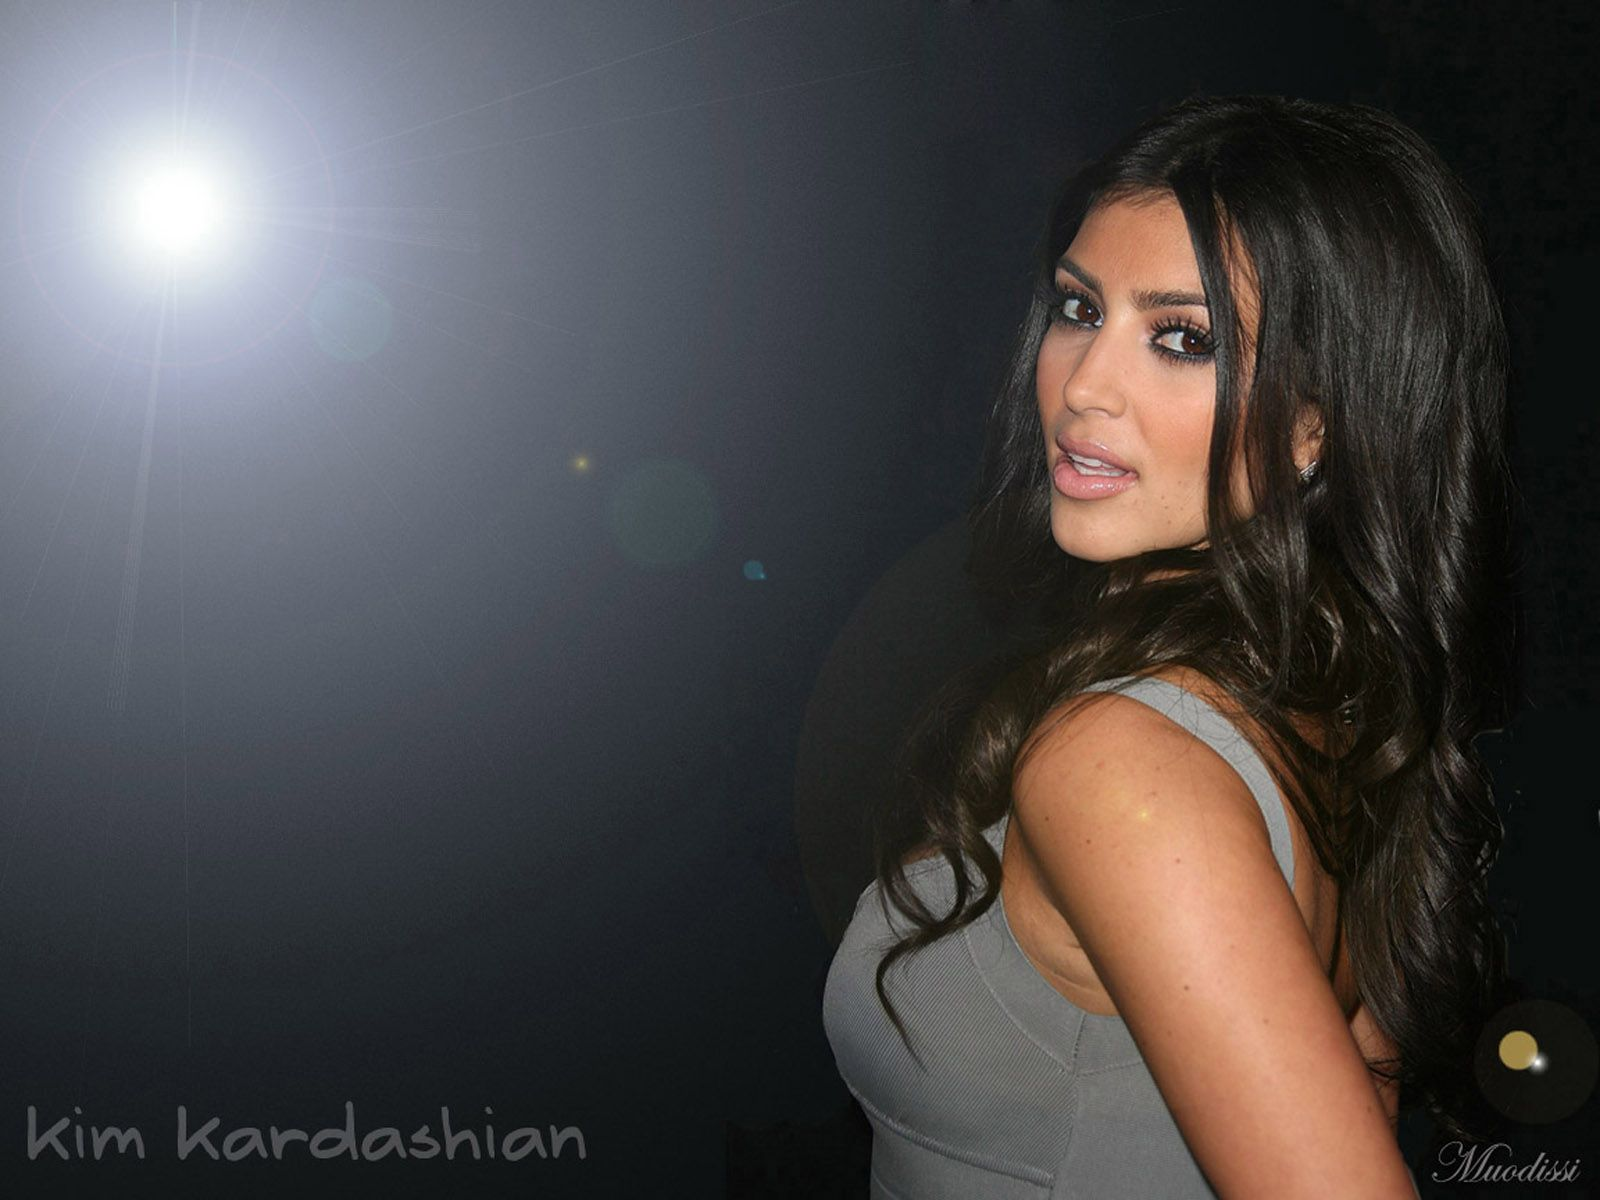 Kim Kardashian Picture Wallpapers (51 Wallpapers) – Adorable ...